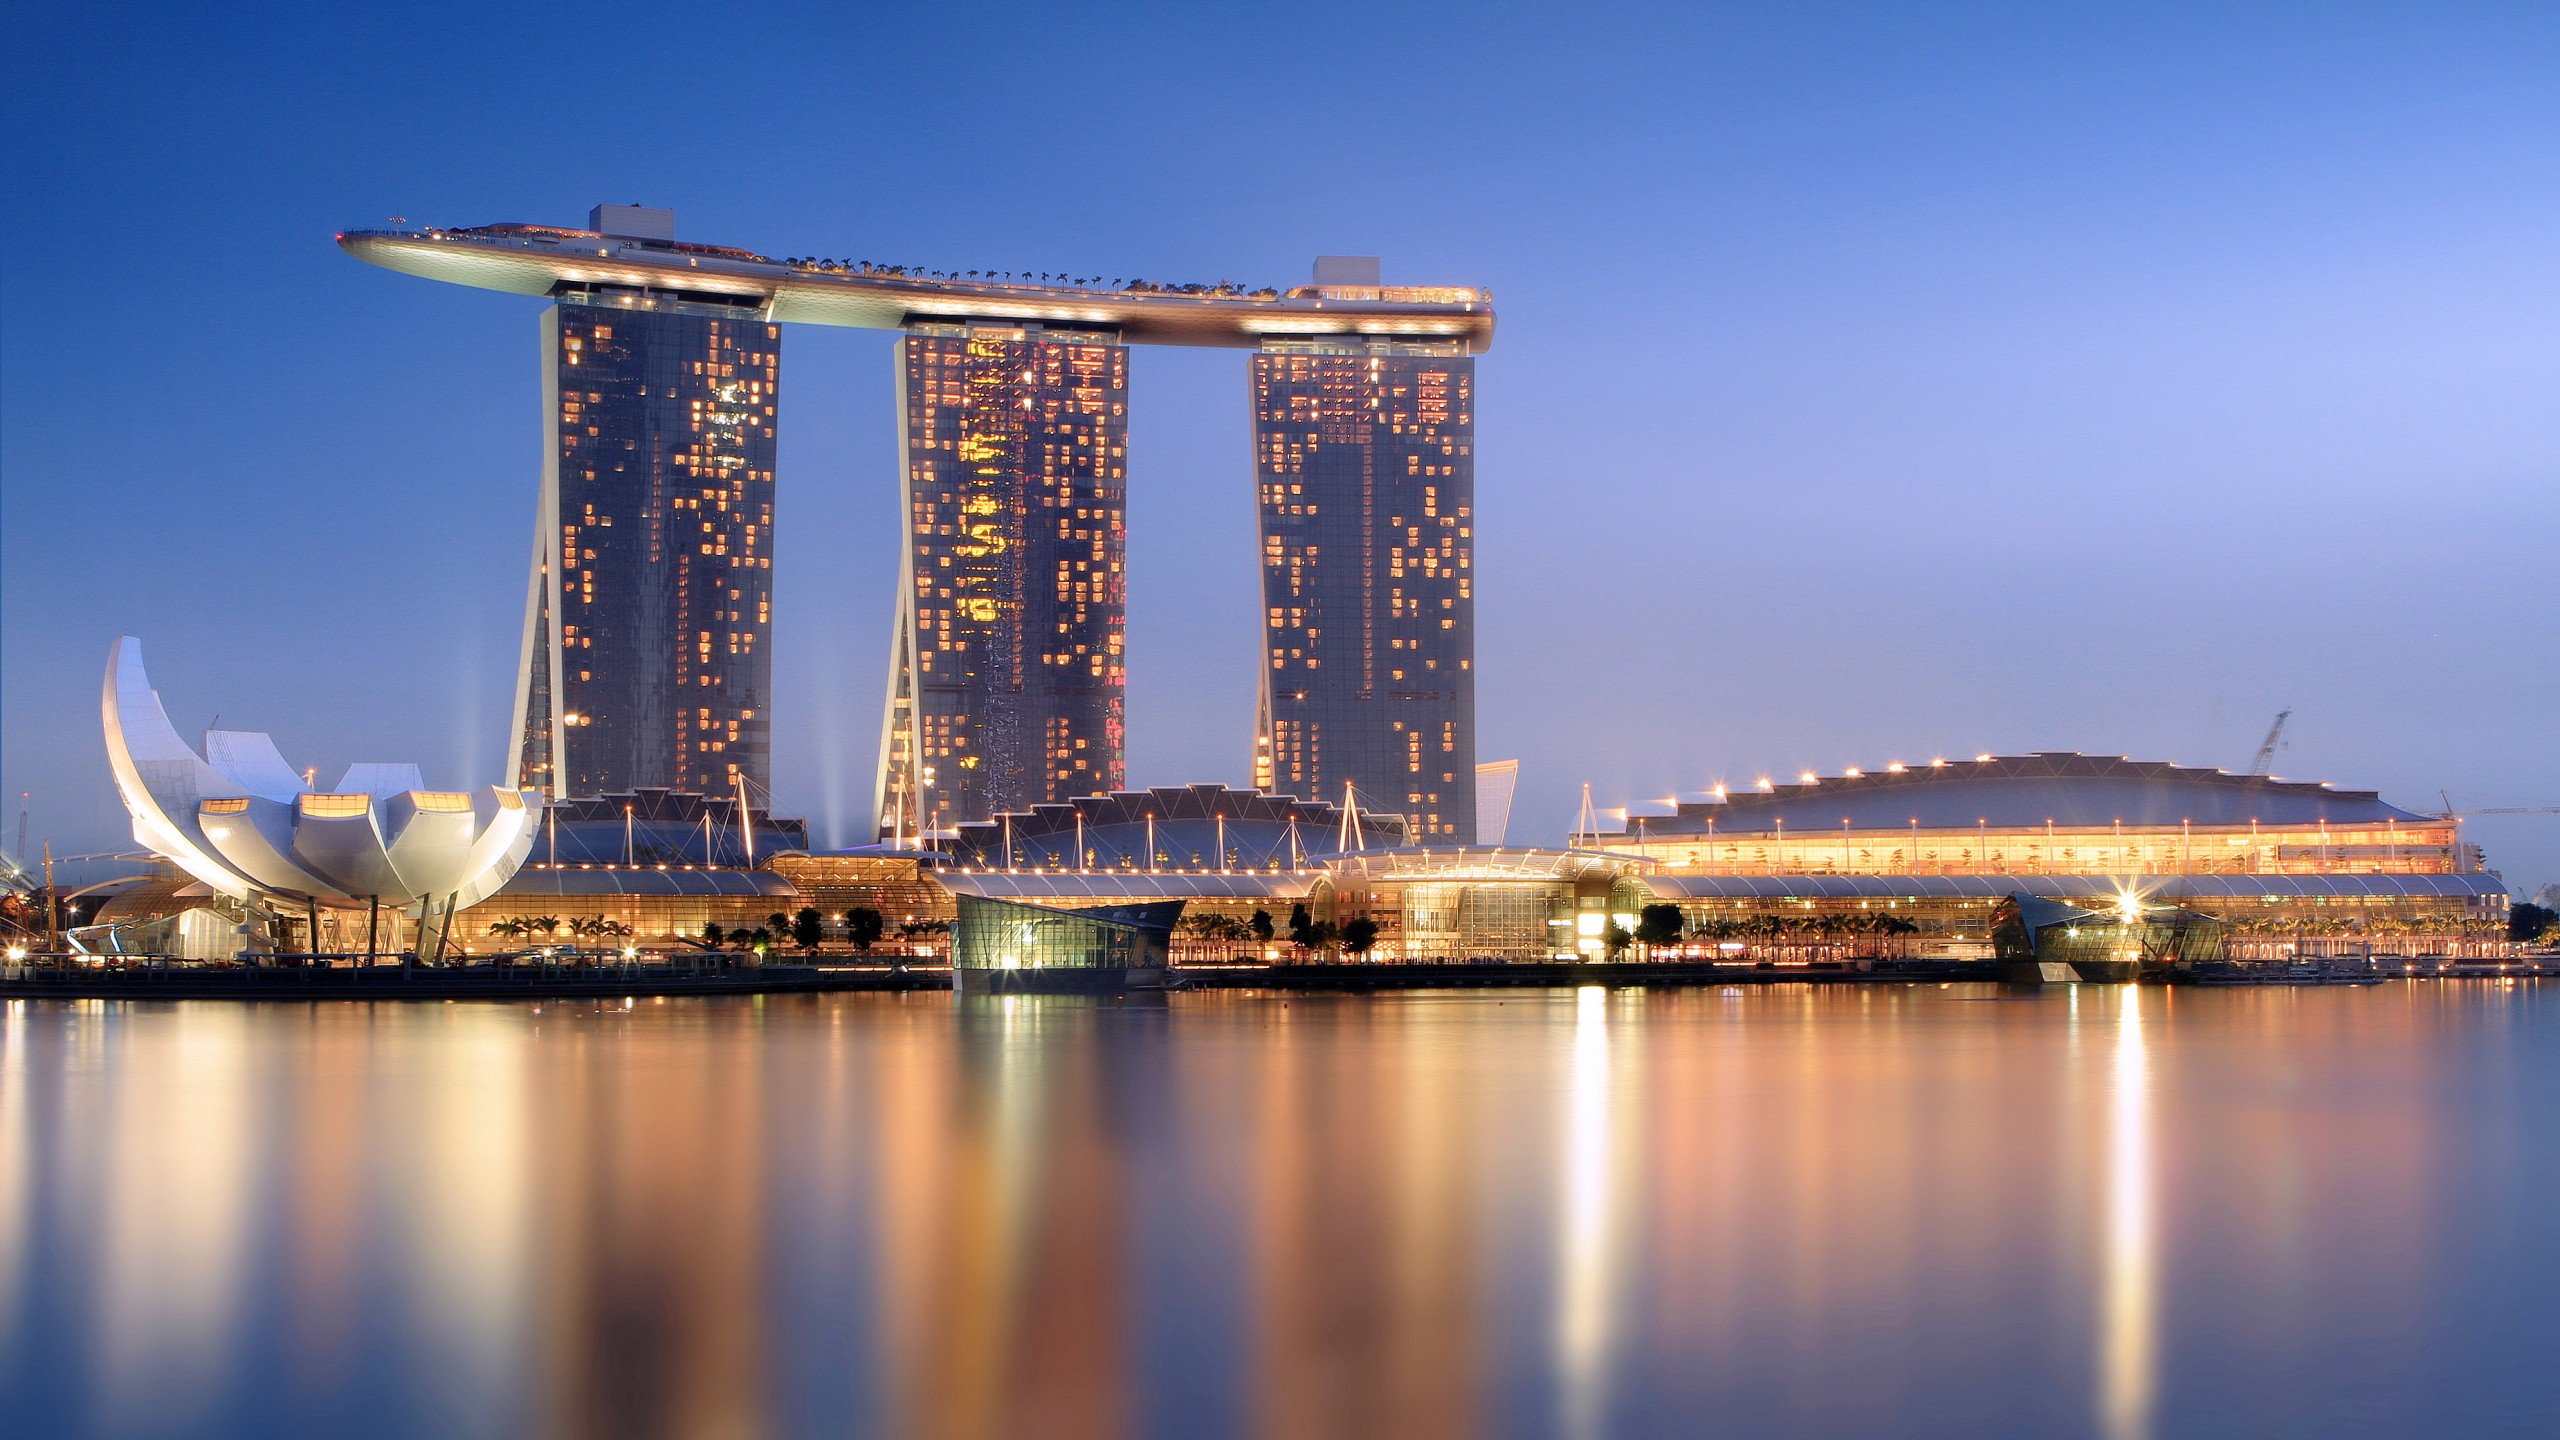 Wallpaper Marina Bay Sands Hotel Travel Booking Pool